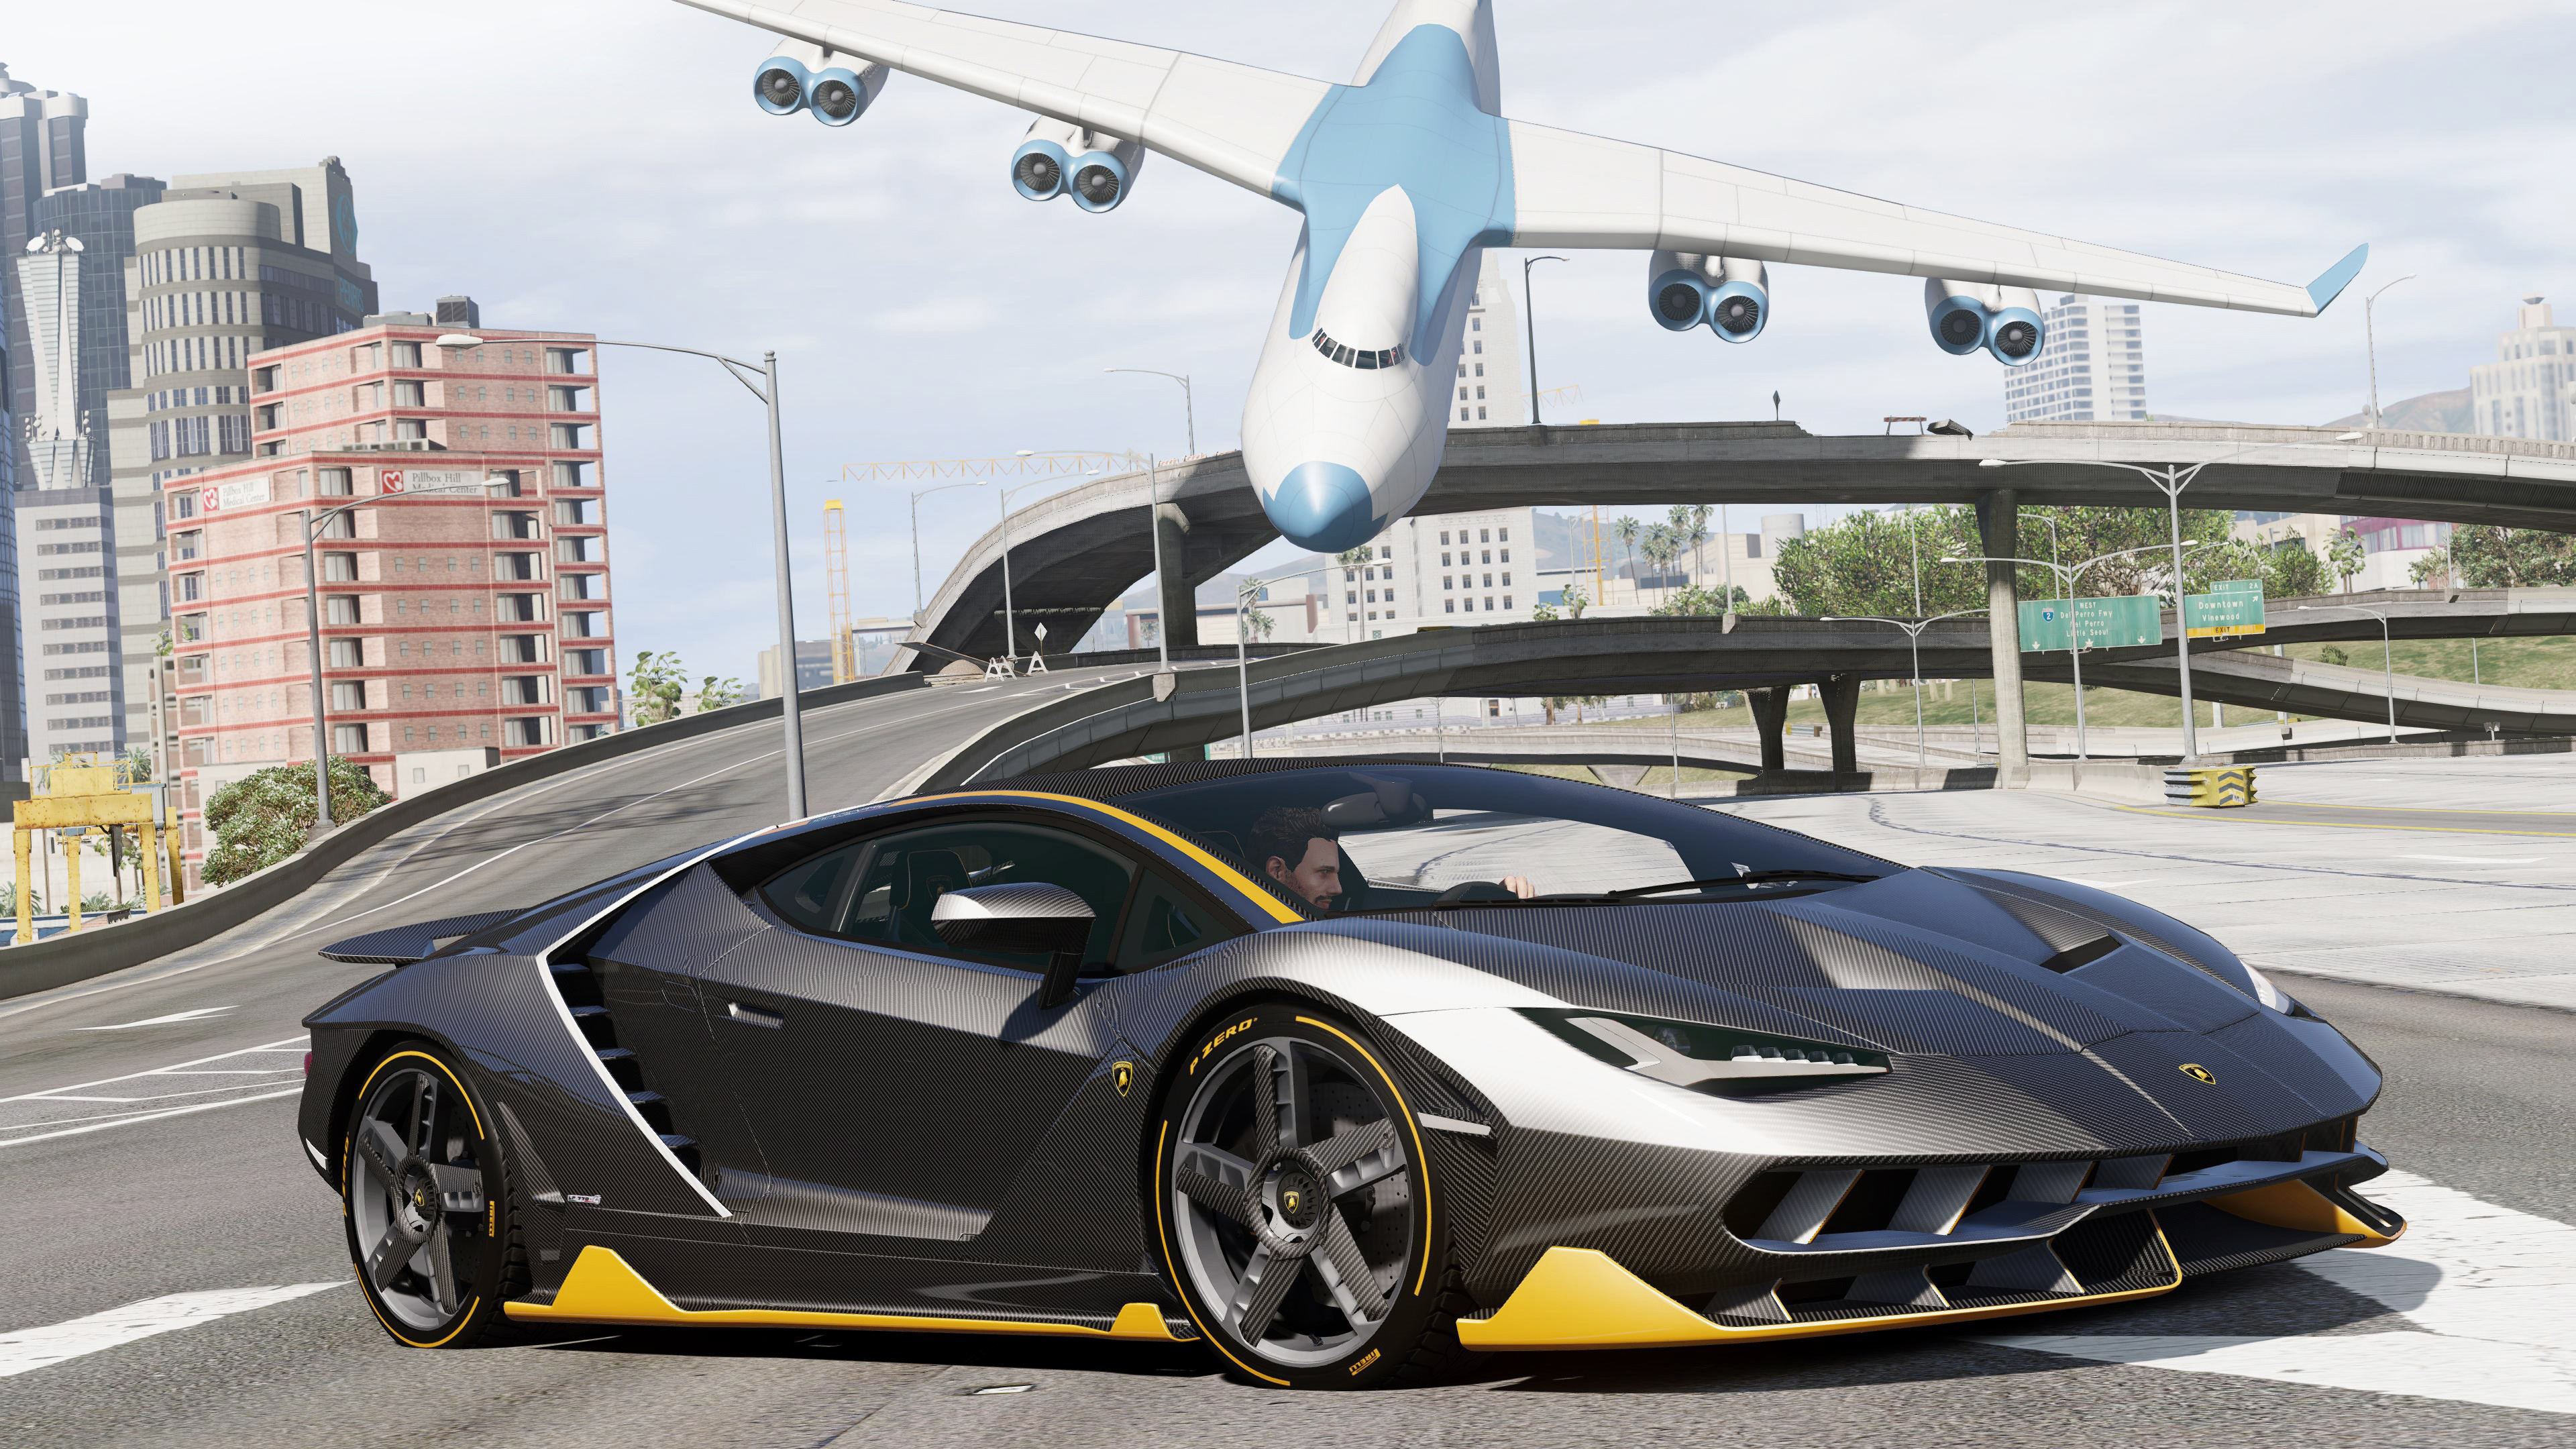 2017 Lamborghini Centenario LP 770-4 [Add-On / Replace] - GTA5-Mods ...